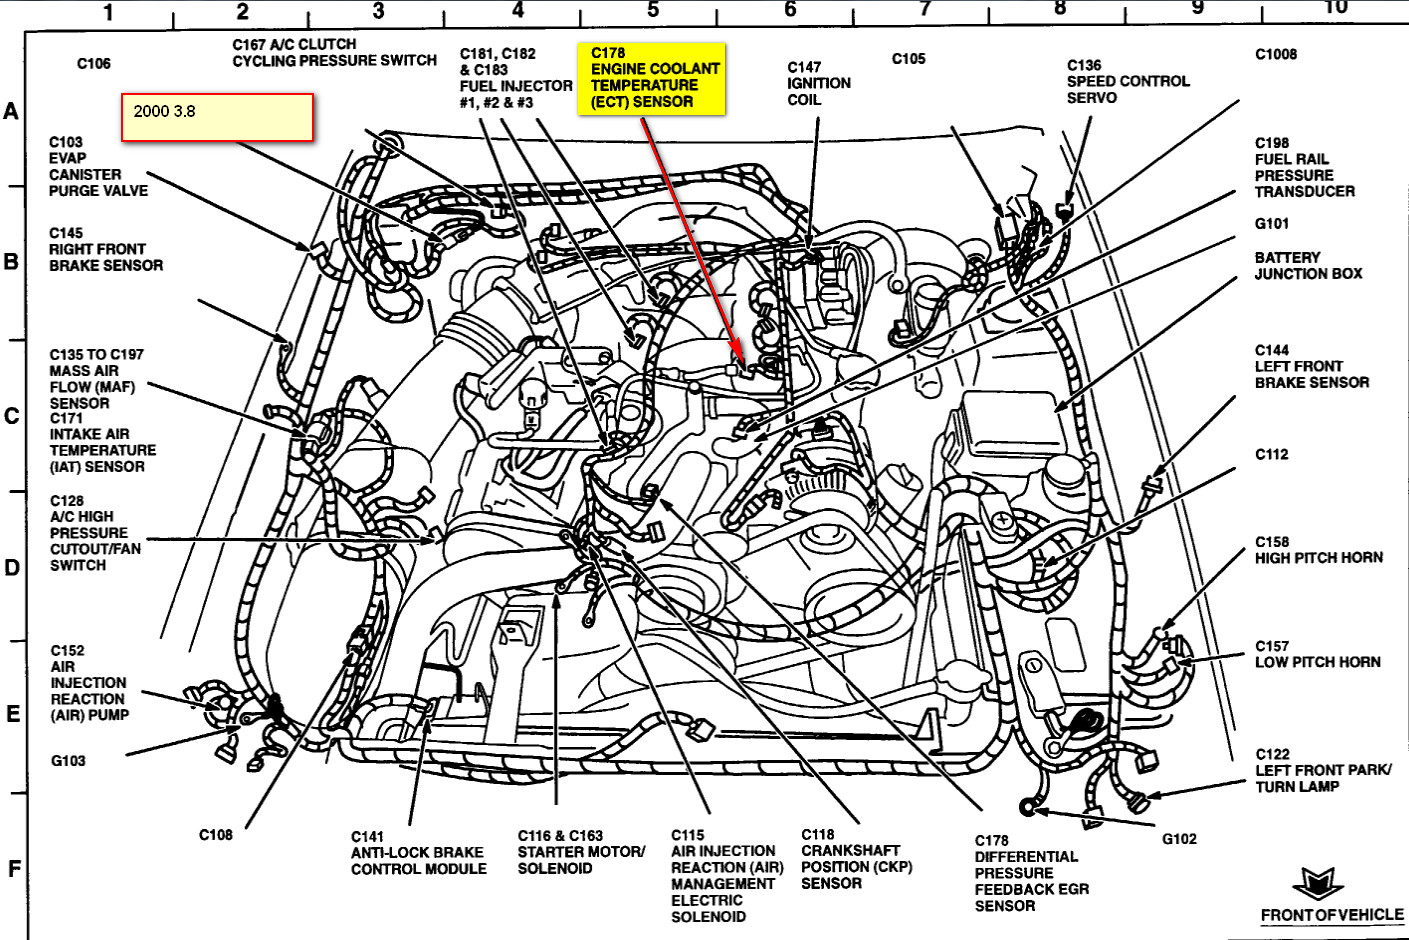 3800 Engine Temperature Sensor Location on 1998 Buick Park Avenue Fuel System